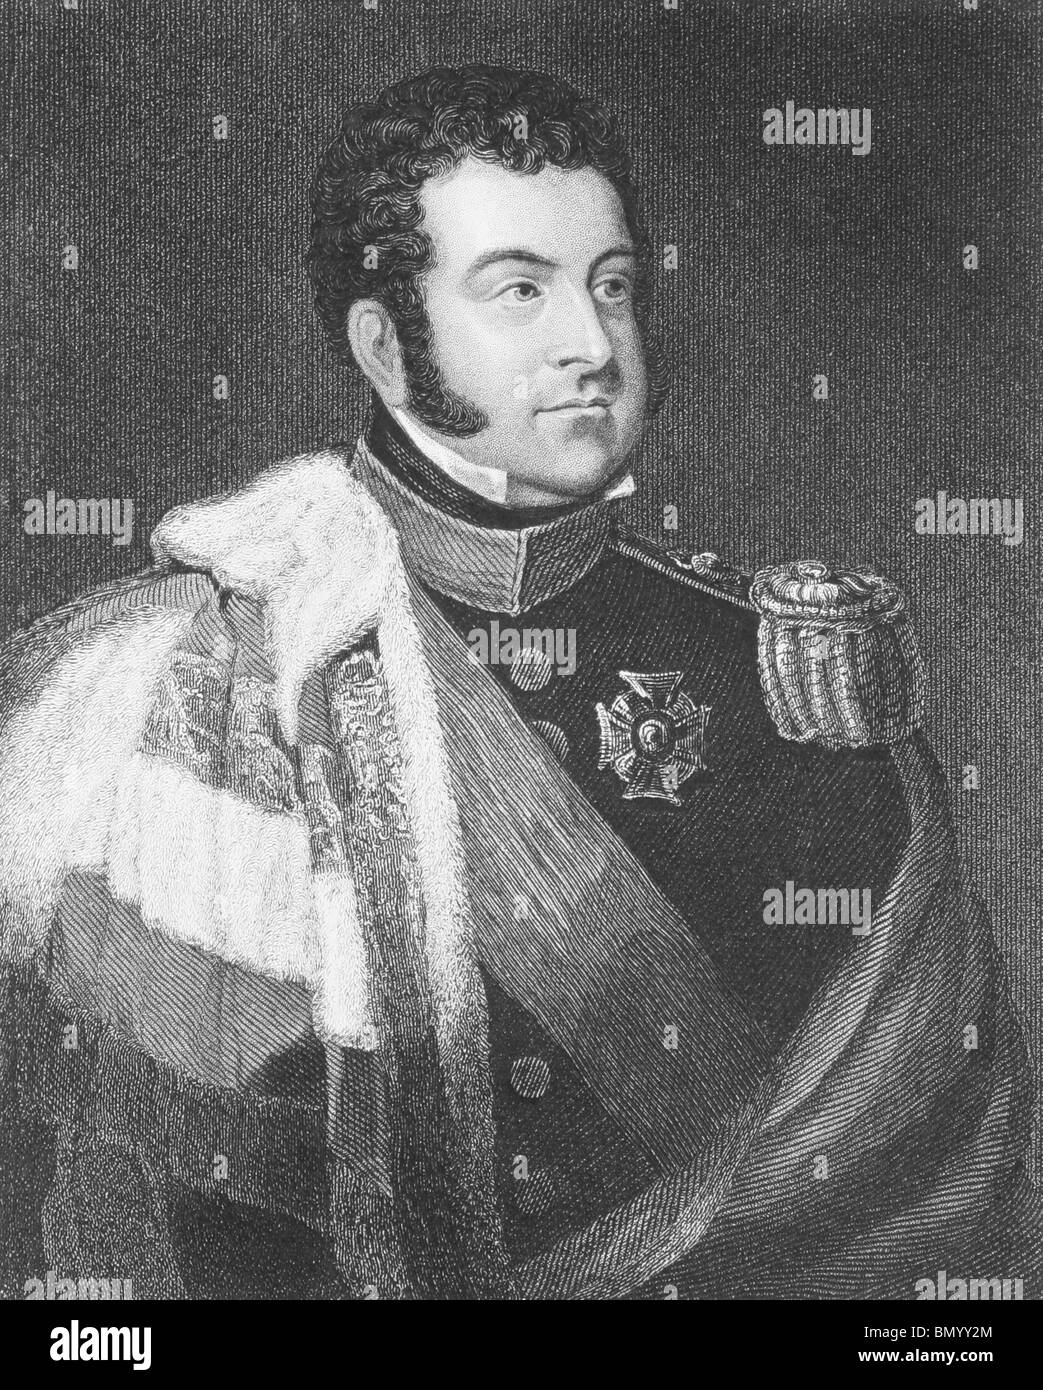 George FitzClarence, 1st Earl of Munster